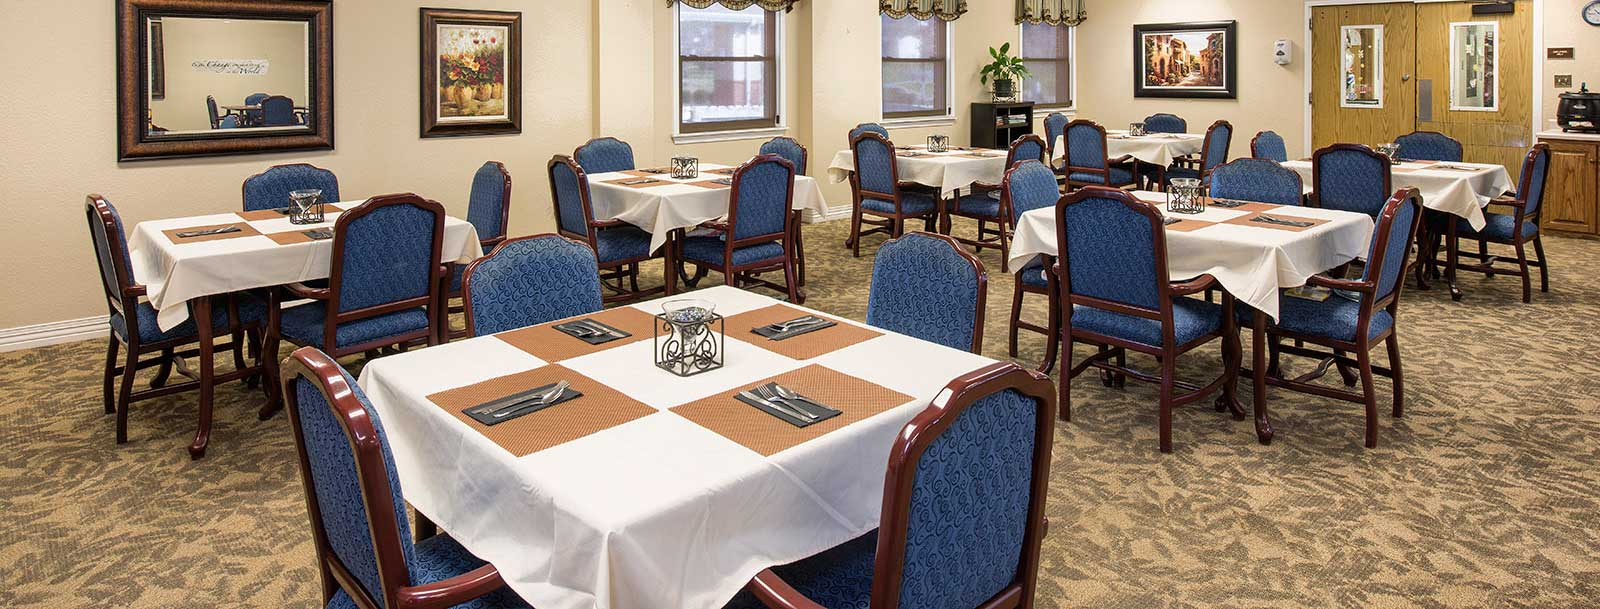 Professional chefs to prepare your meals at the senior living facility in Rolla